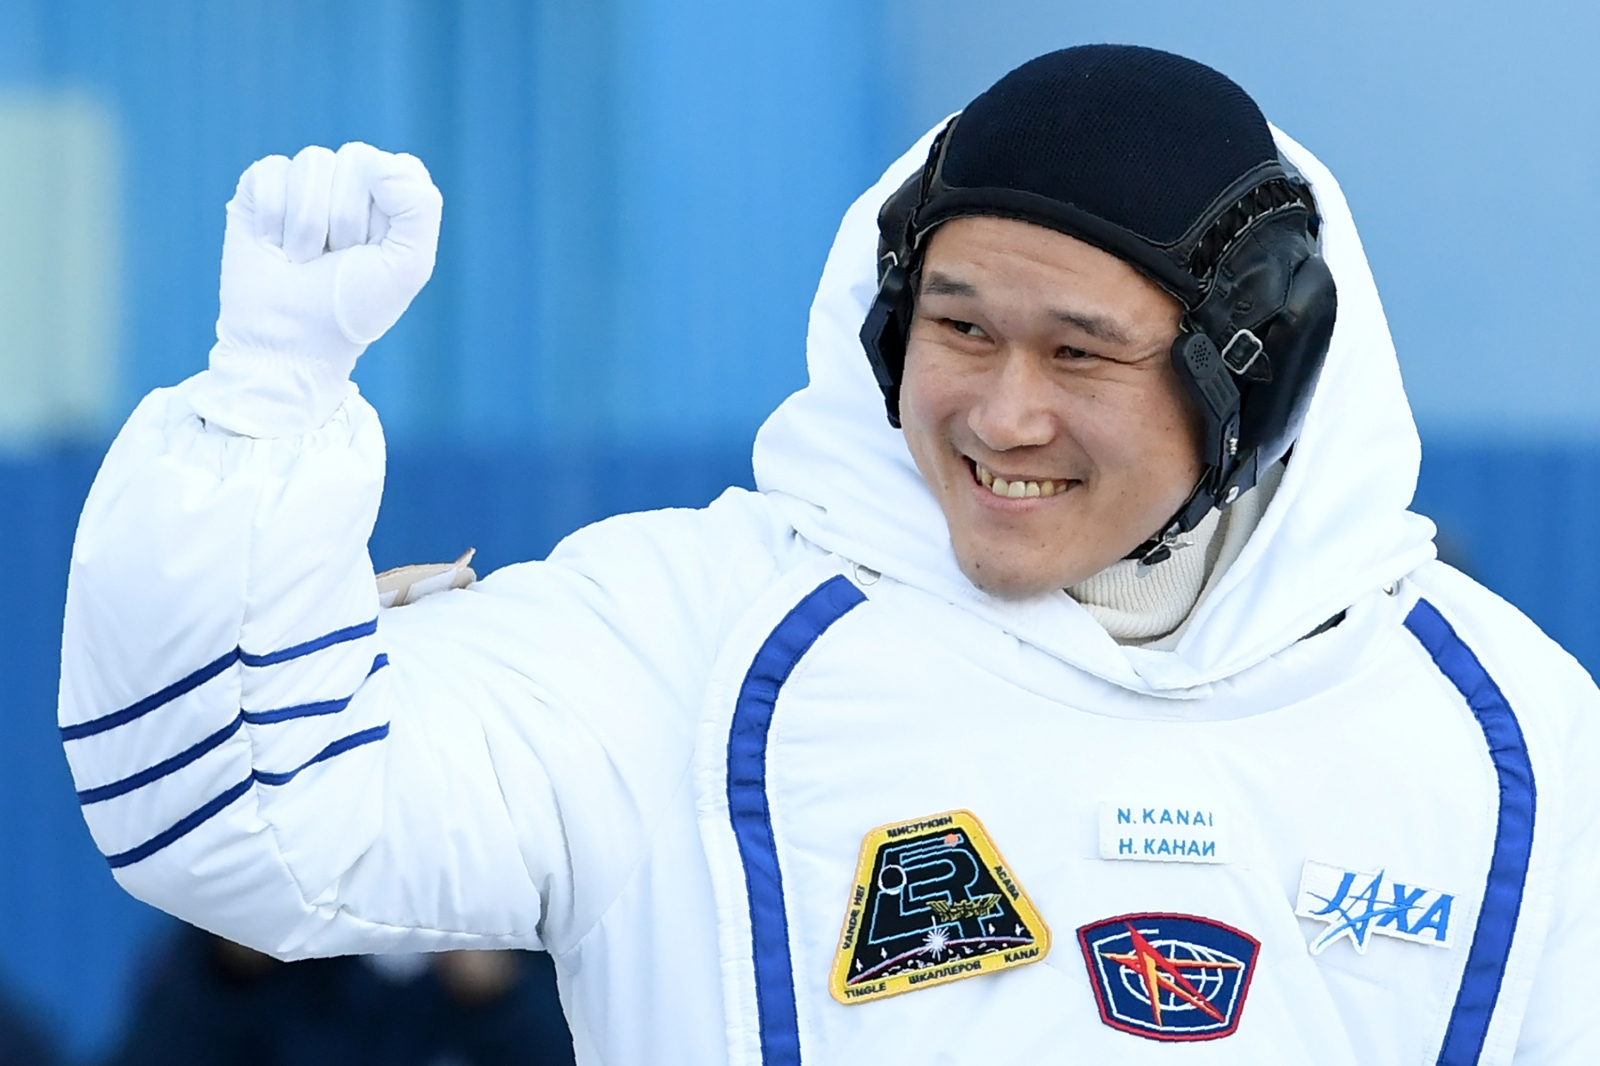 Japanese astronaut anxious after growth spurt in space